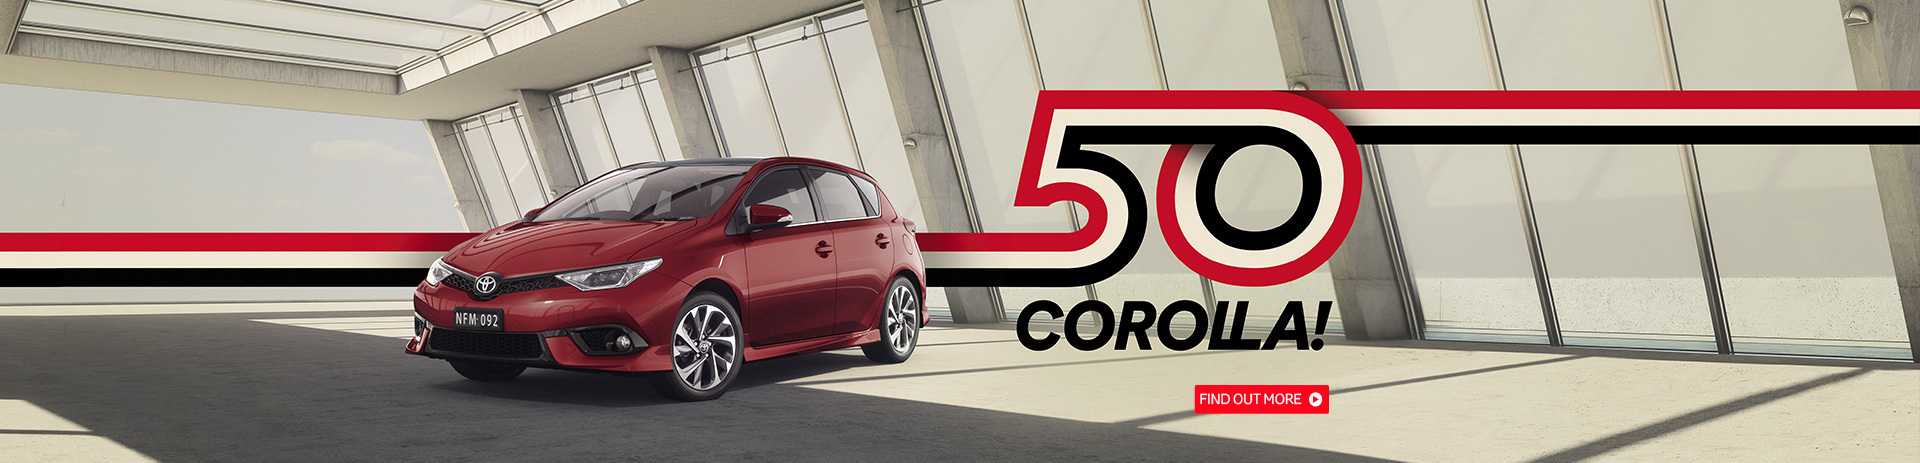 50 Years of Corolla